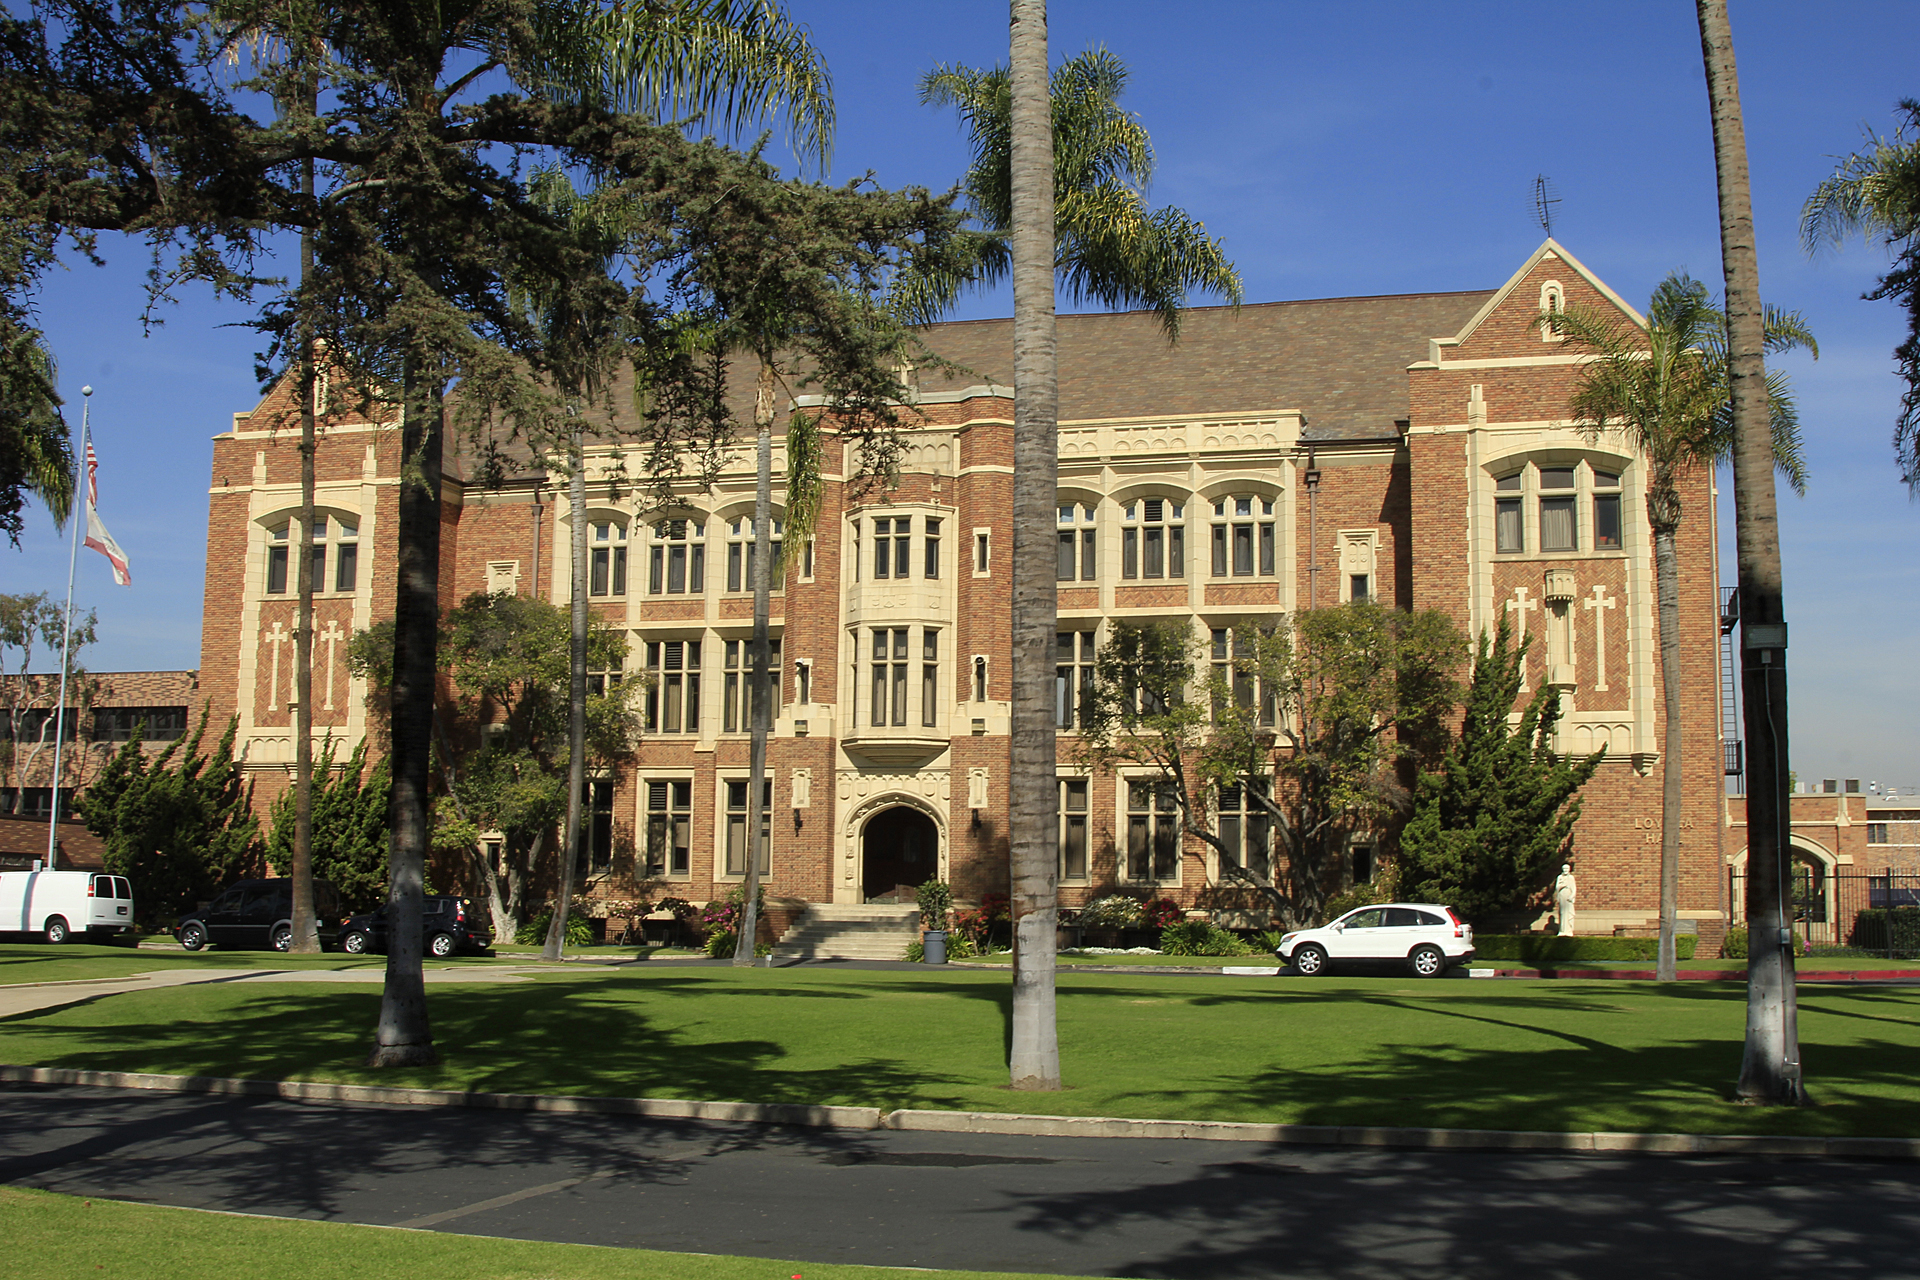 Loyola High School, a Jesuit preparatory school for boys, is not merely a stunning building. Founded in 1865, it's the oldest high school and continuously run educational institution in Southern California, pre-dating the University of CA system.